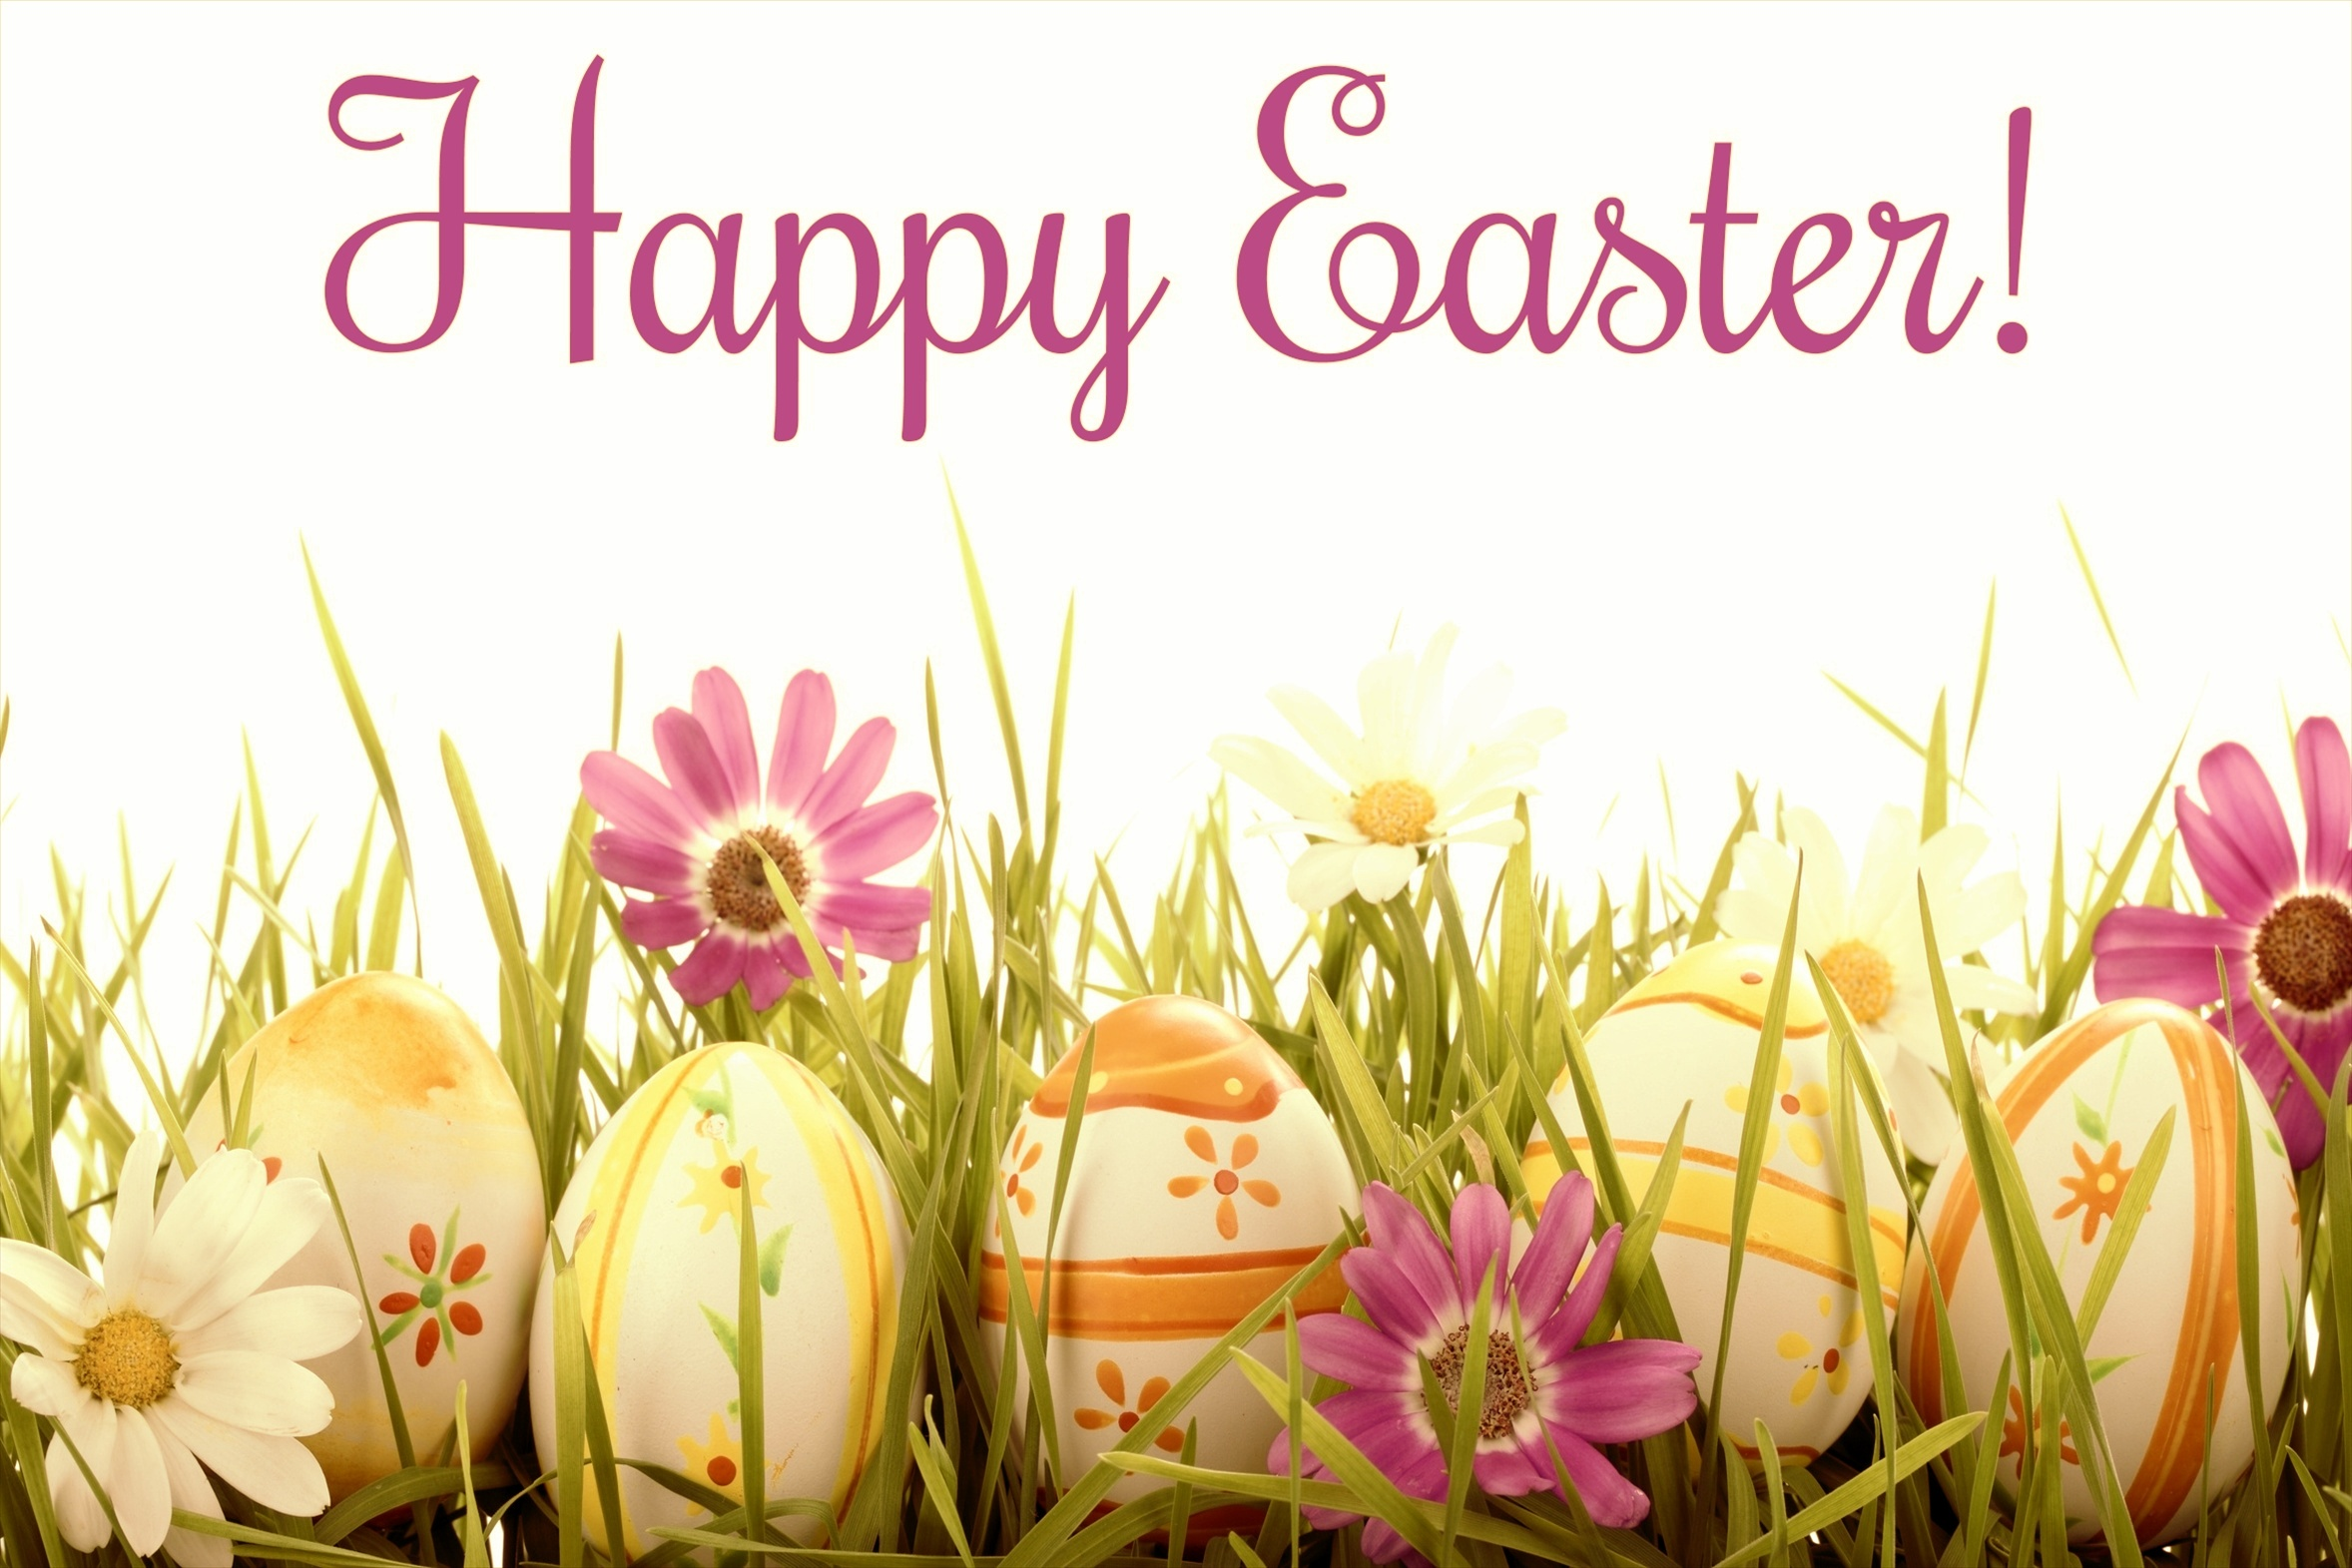 Happy Easter Sunday Images 2015 2356x1571